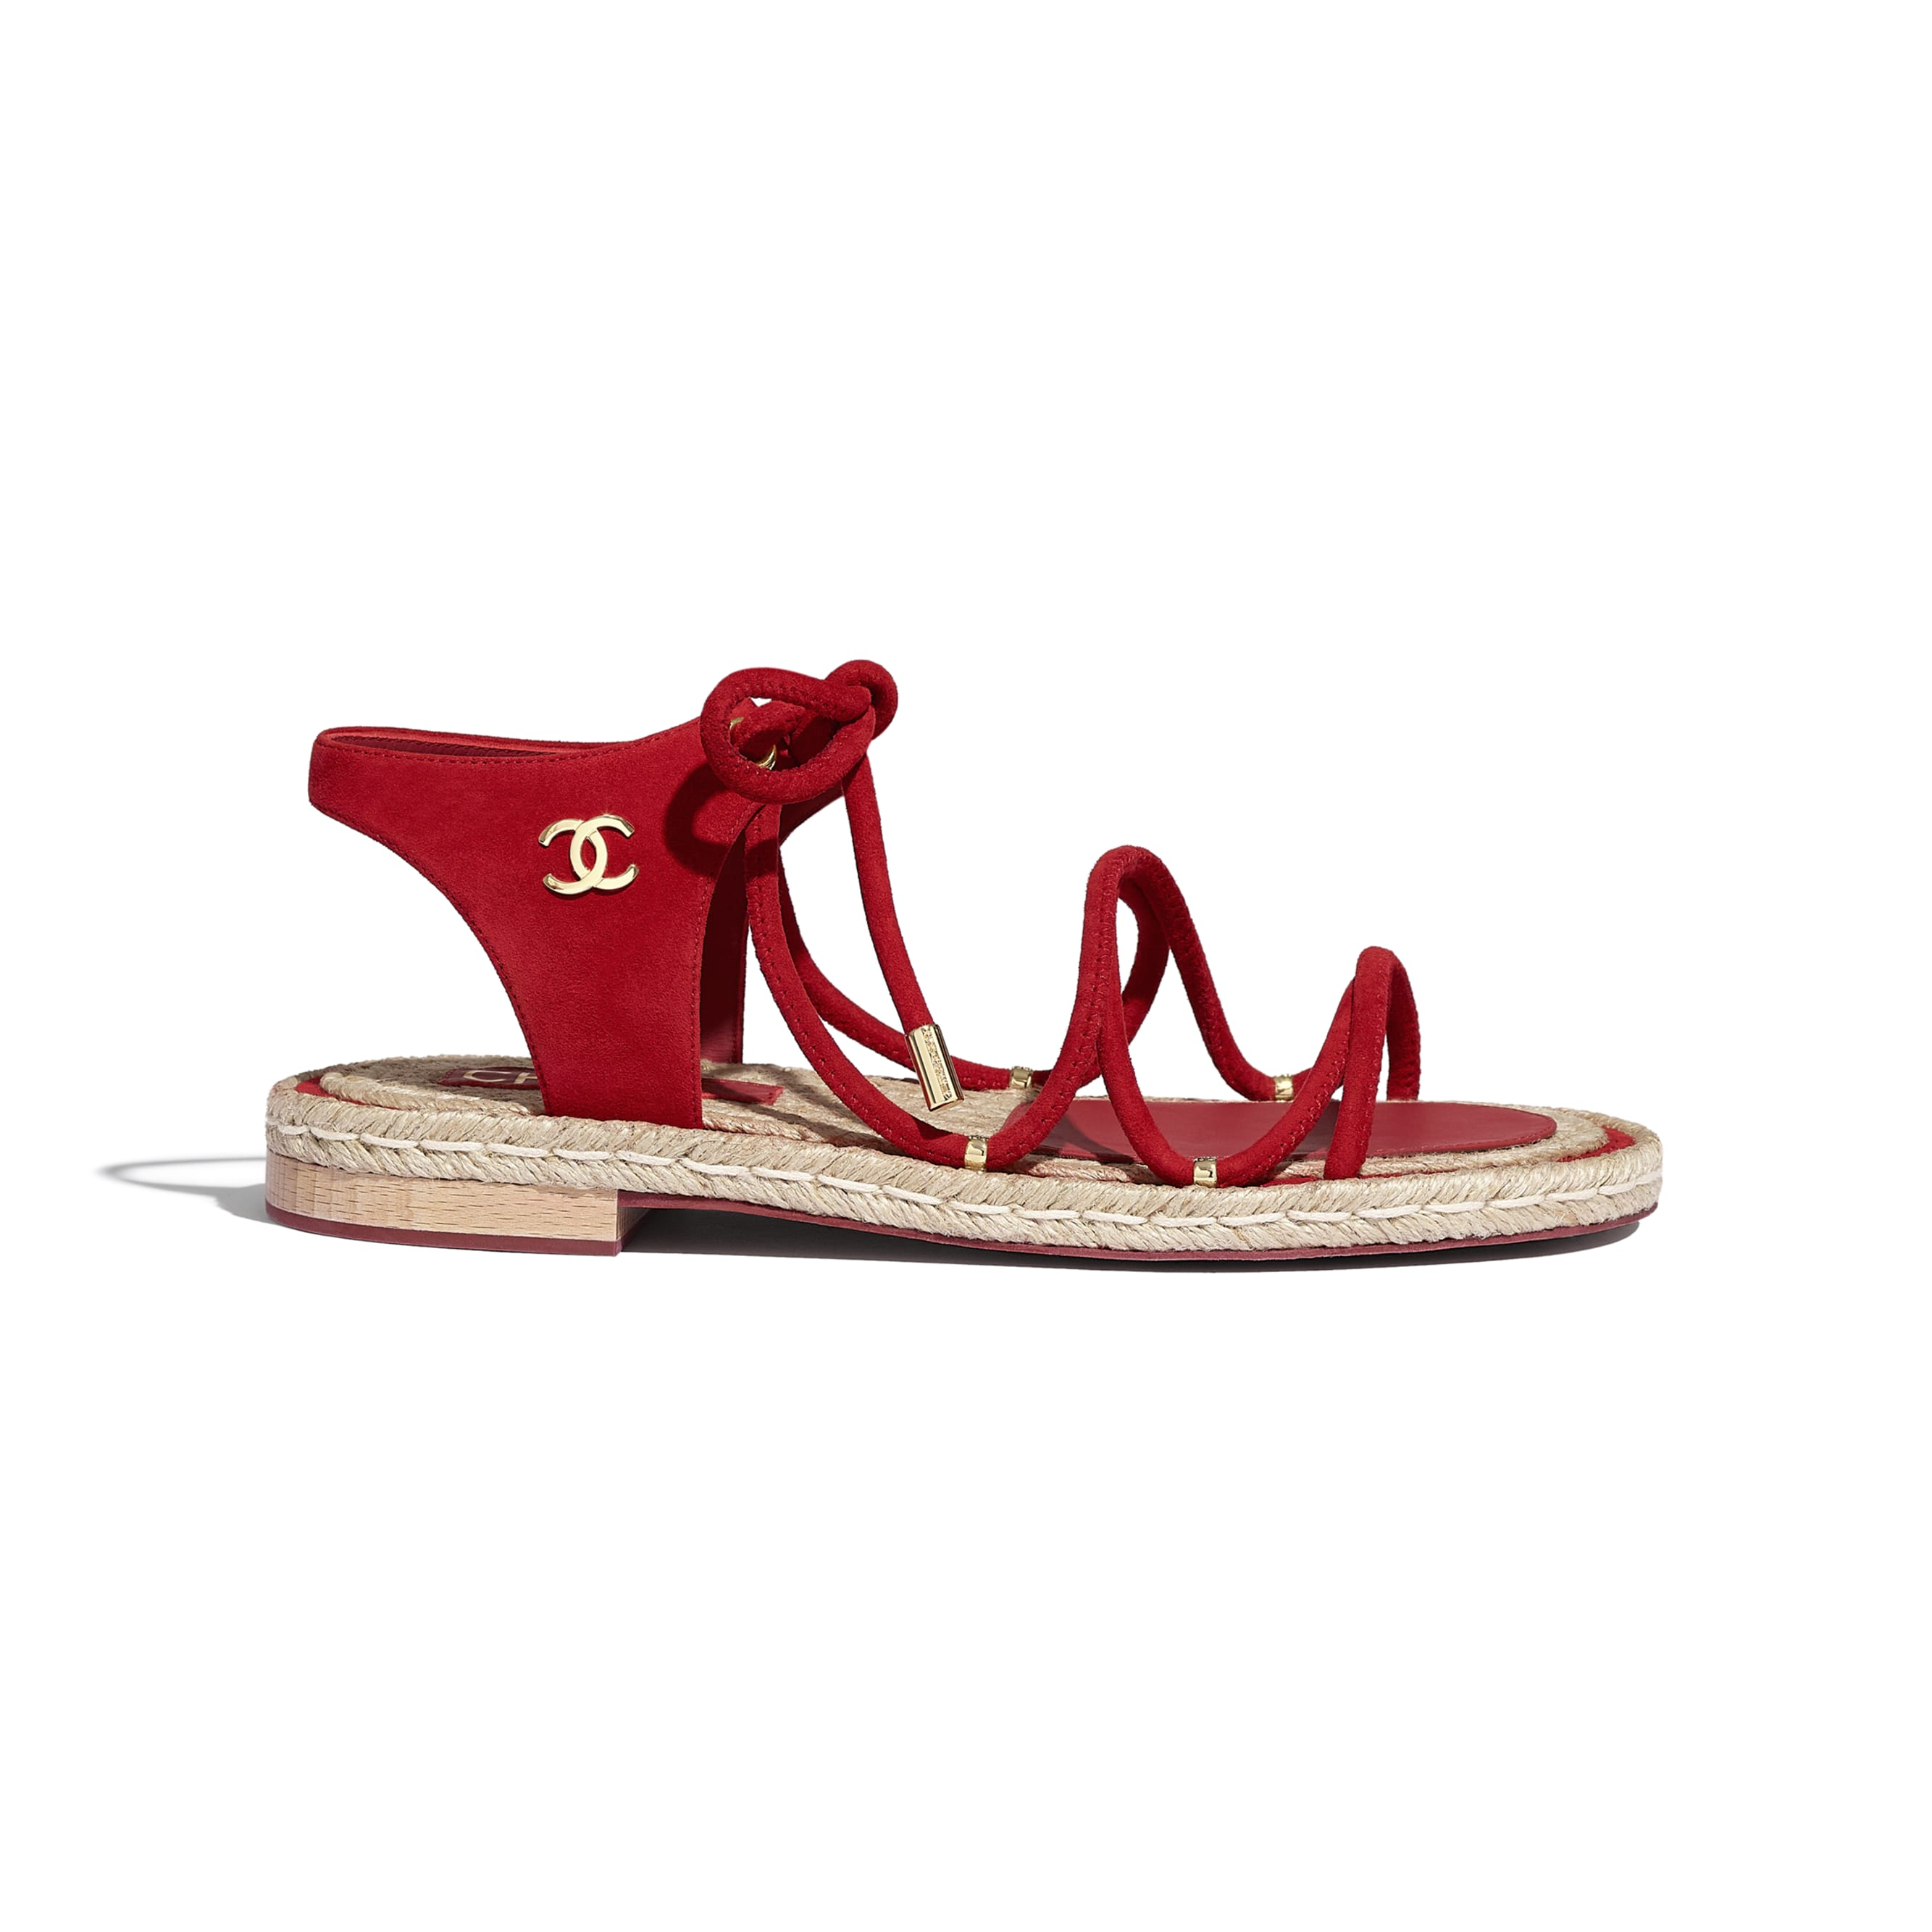 Sandals - Red - Suede Kidskin - CHANEL - Default view - see standard sized version